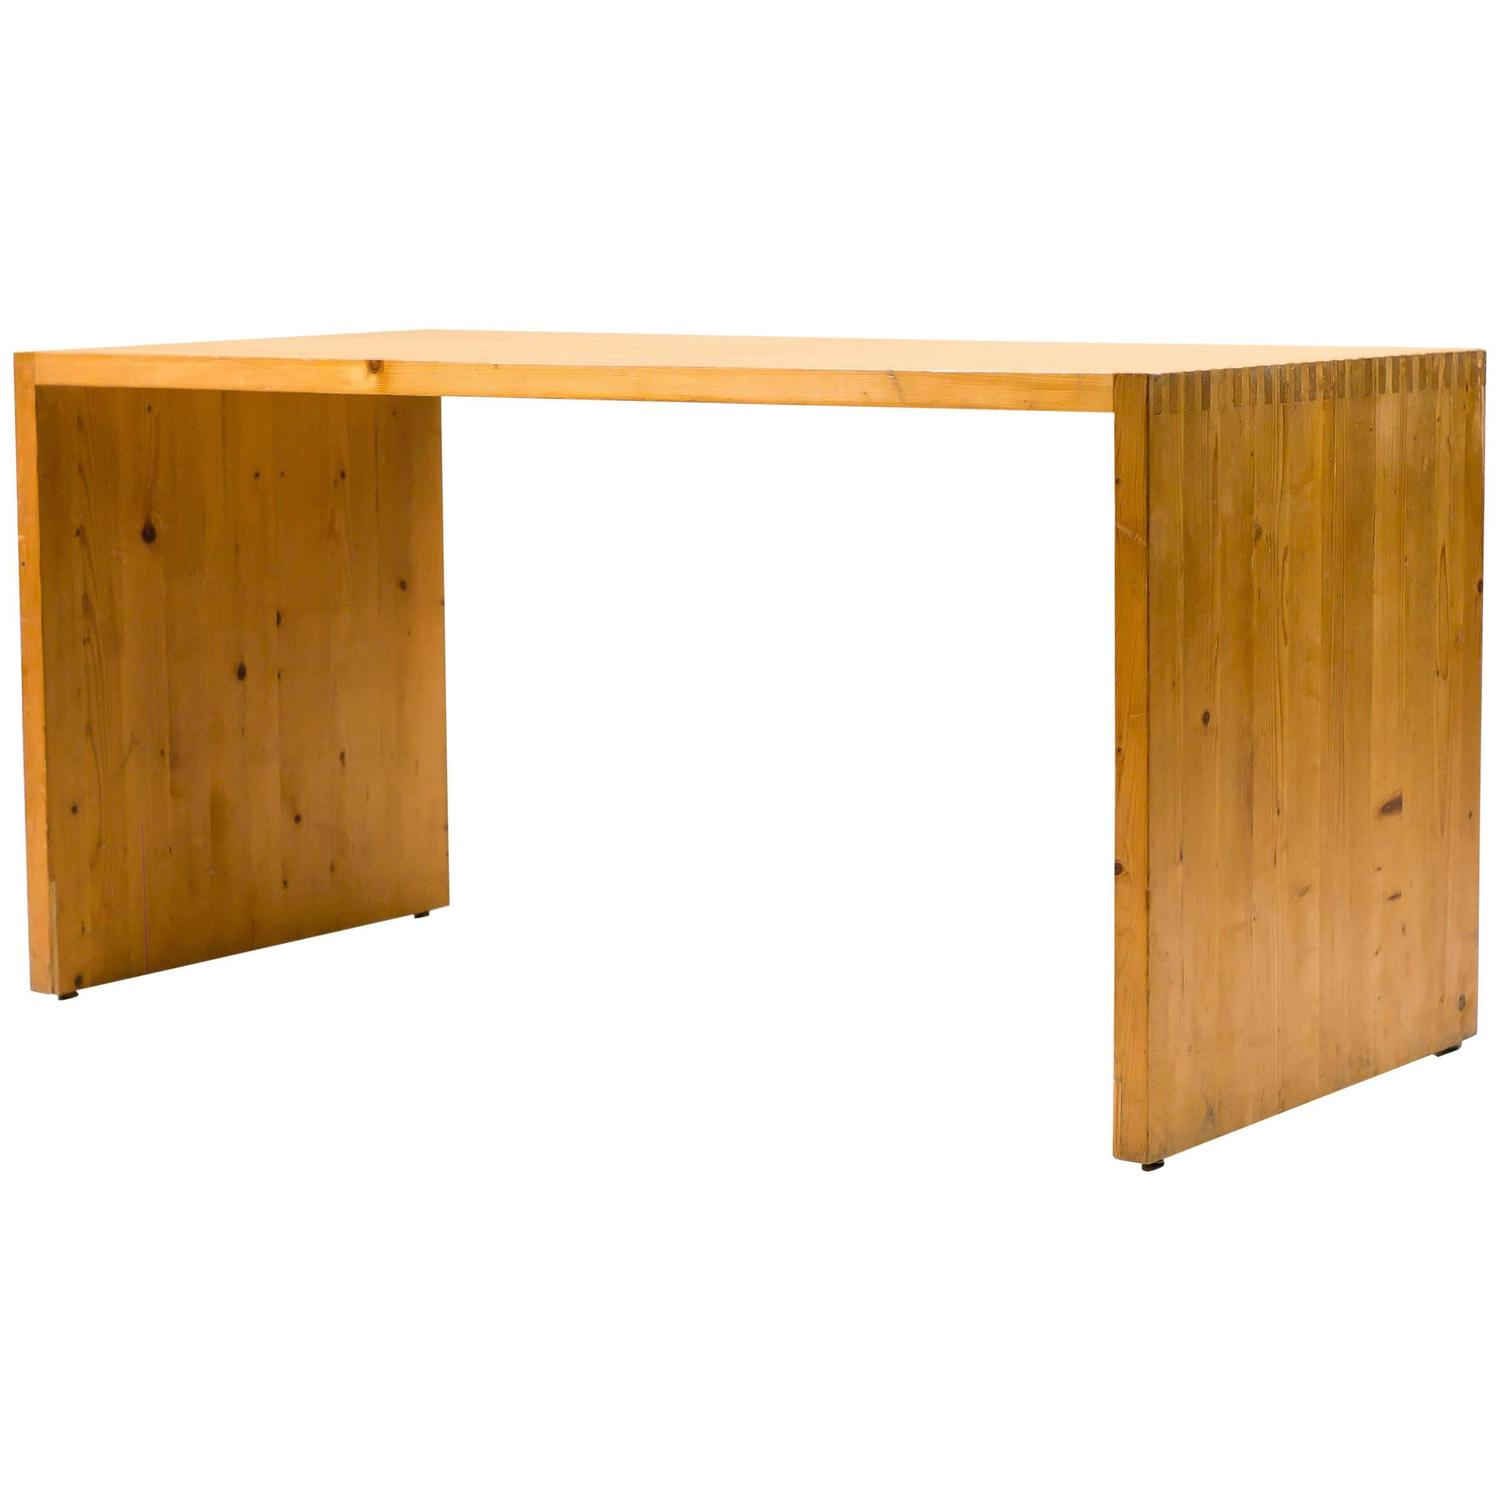 Minimalist Table Dutch Minimalist Table At 1stdibs